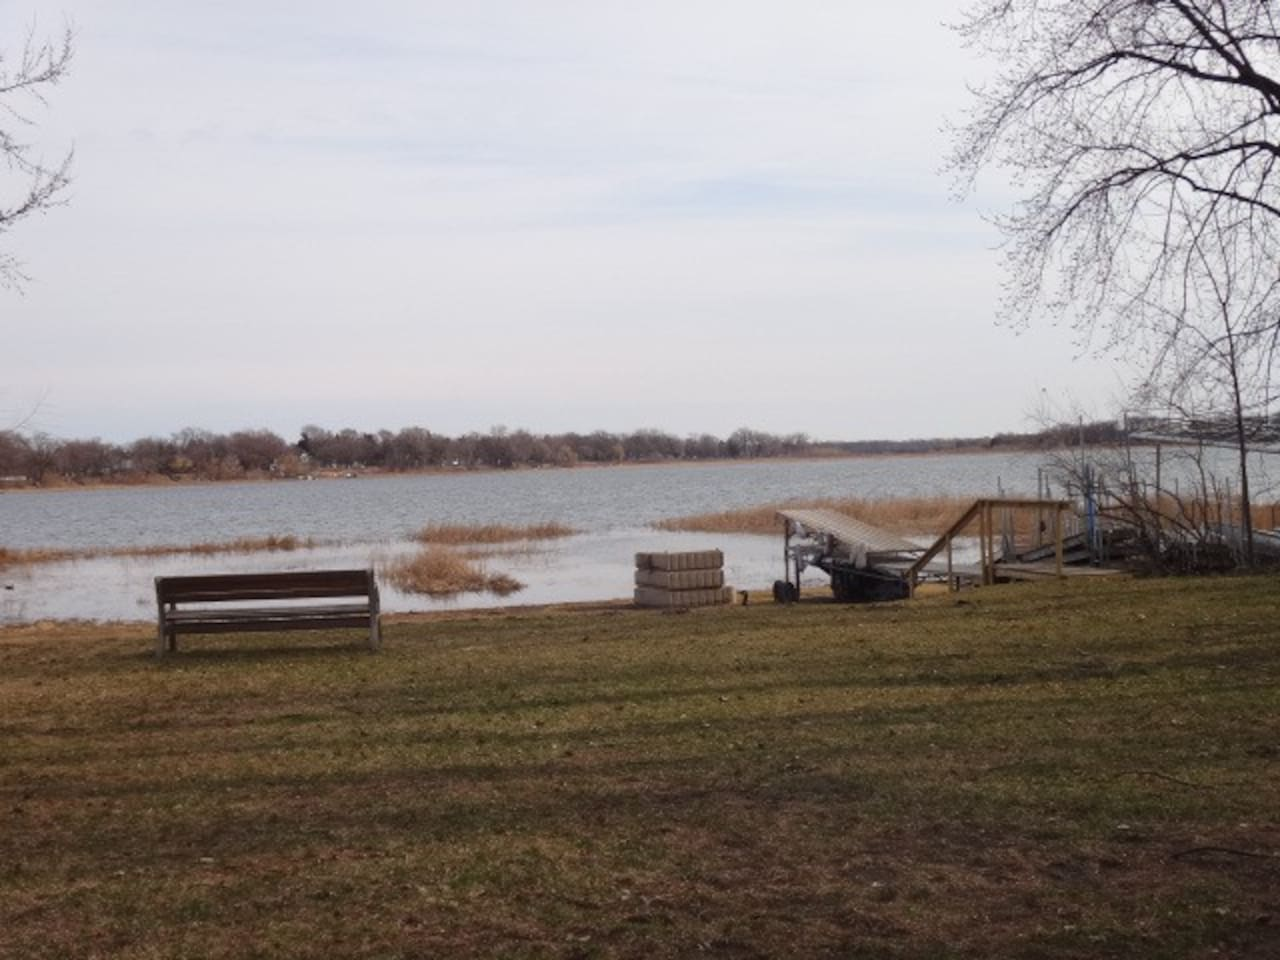 Lake access (private beach area with docks)